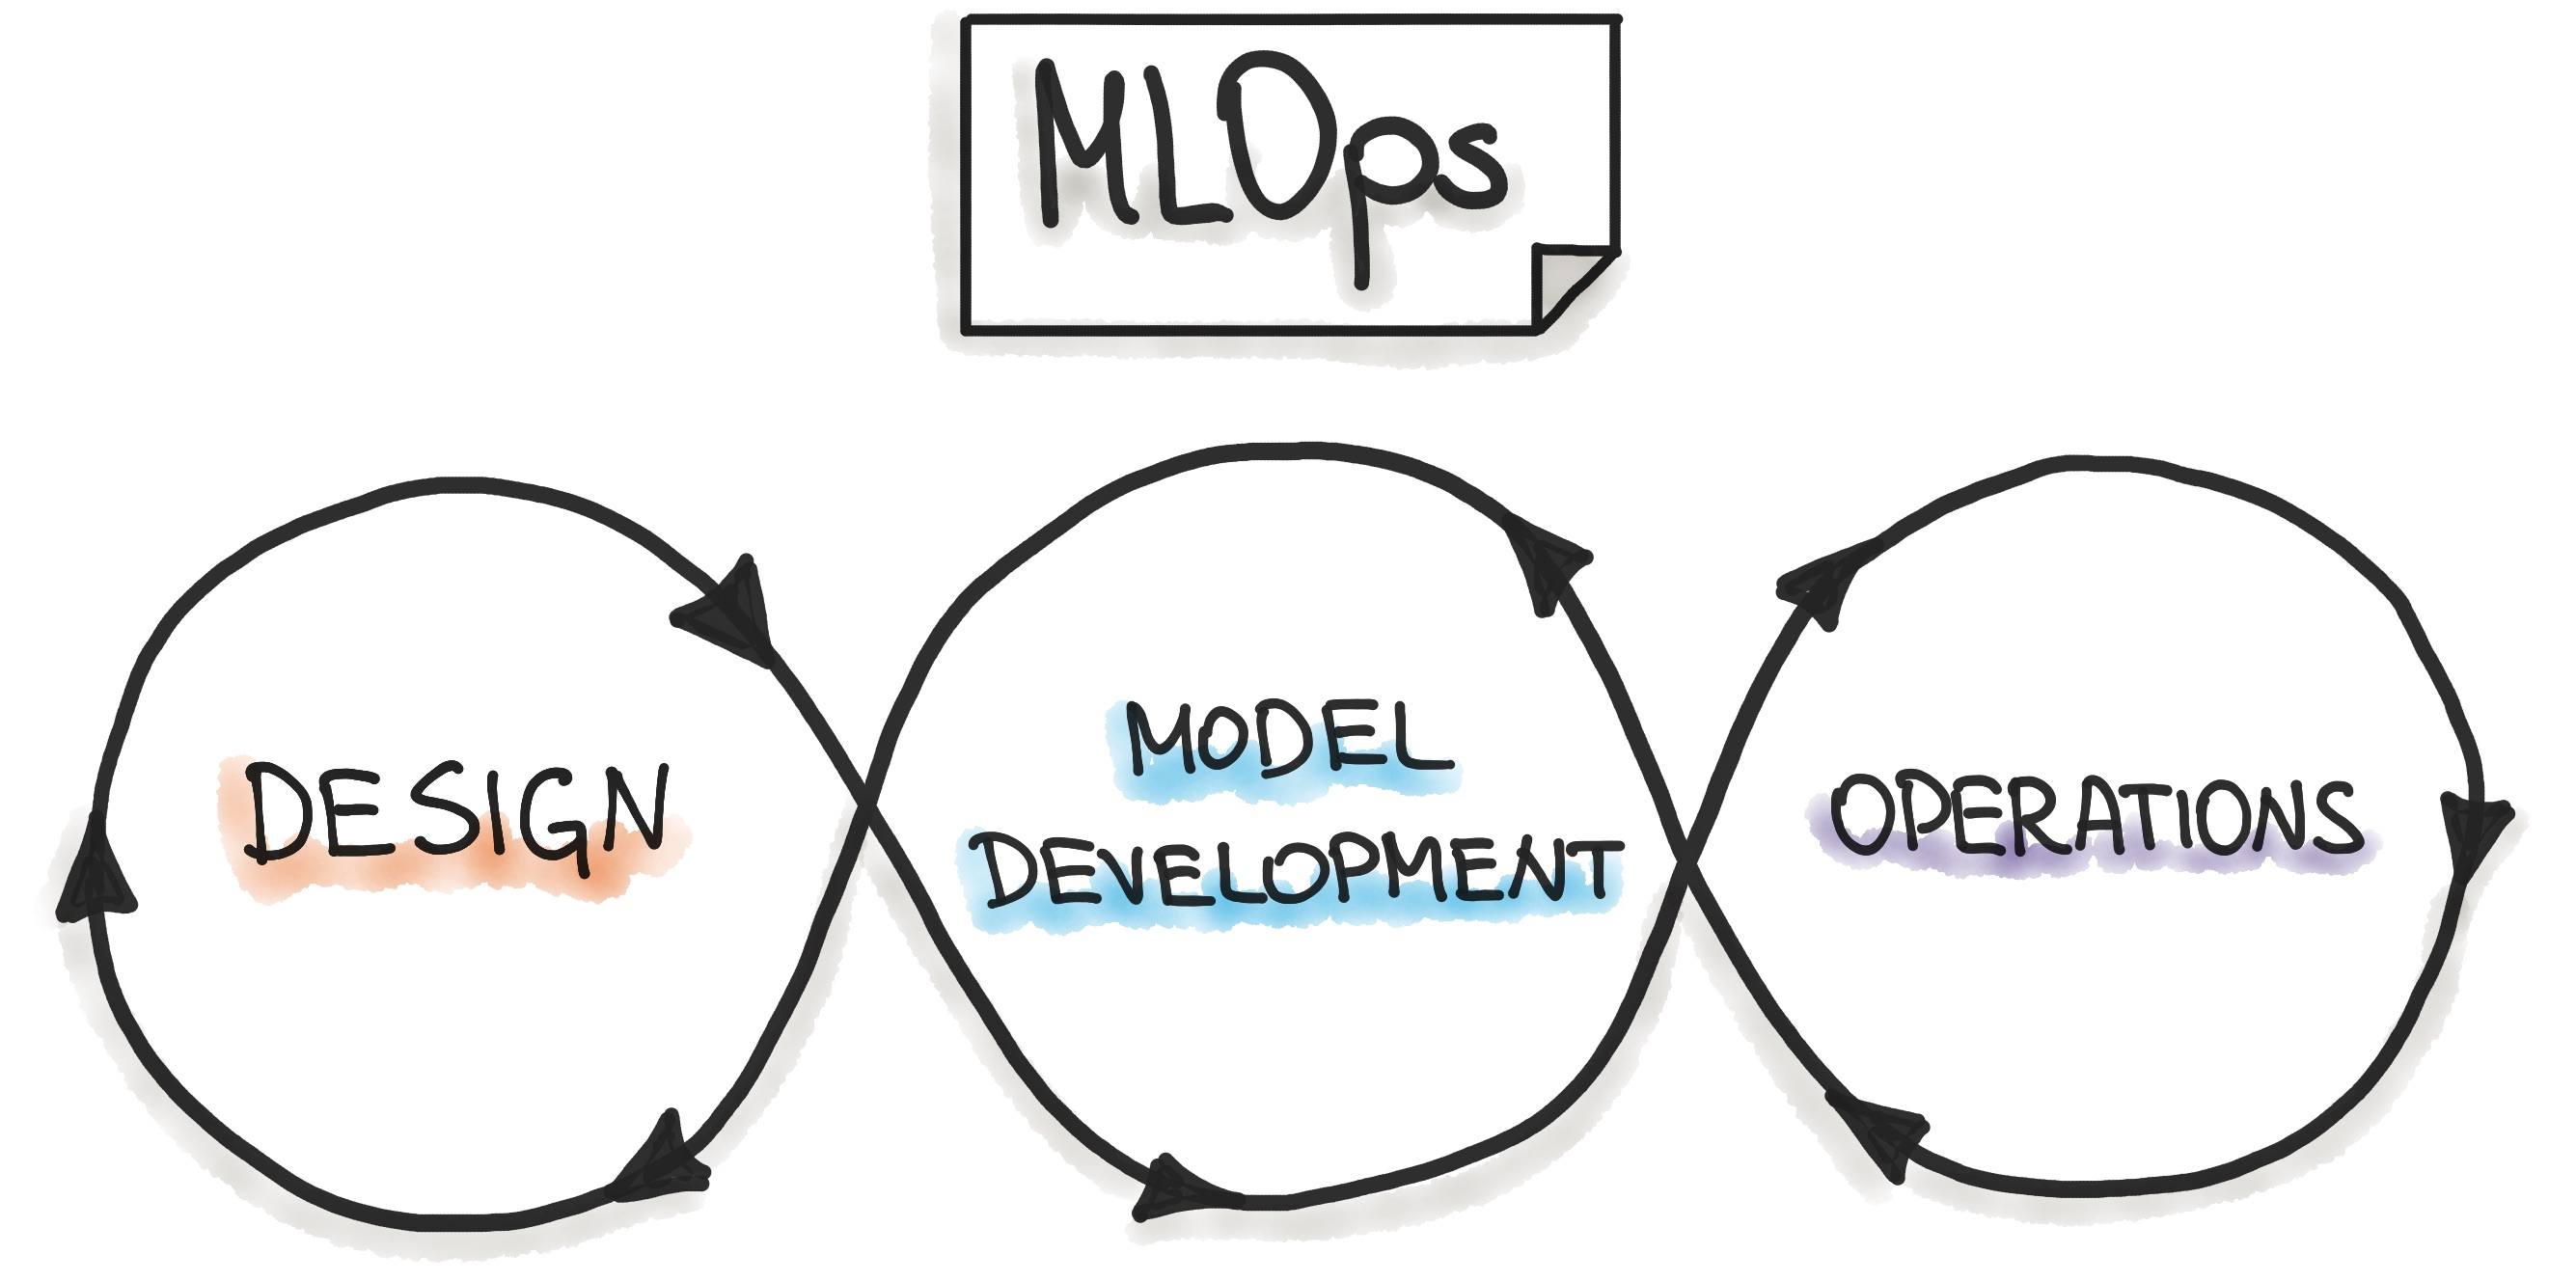 ML Ops: Machine Learning Operations